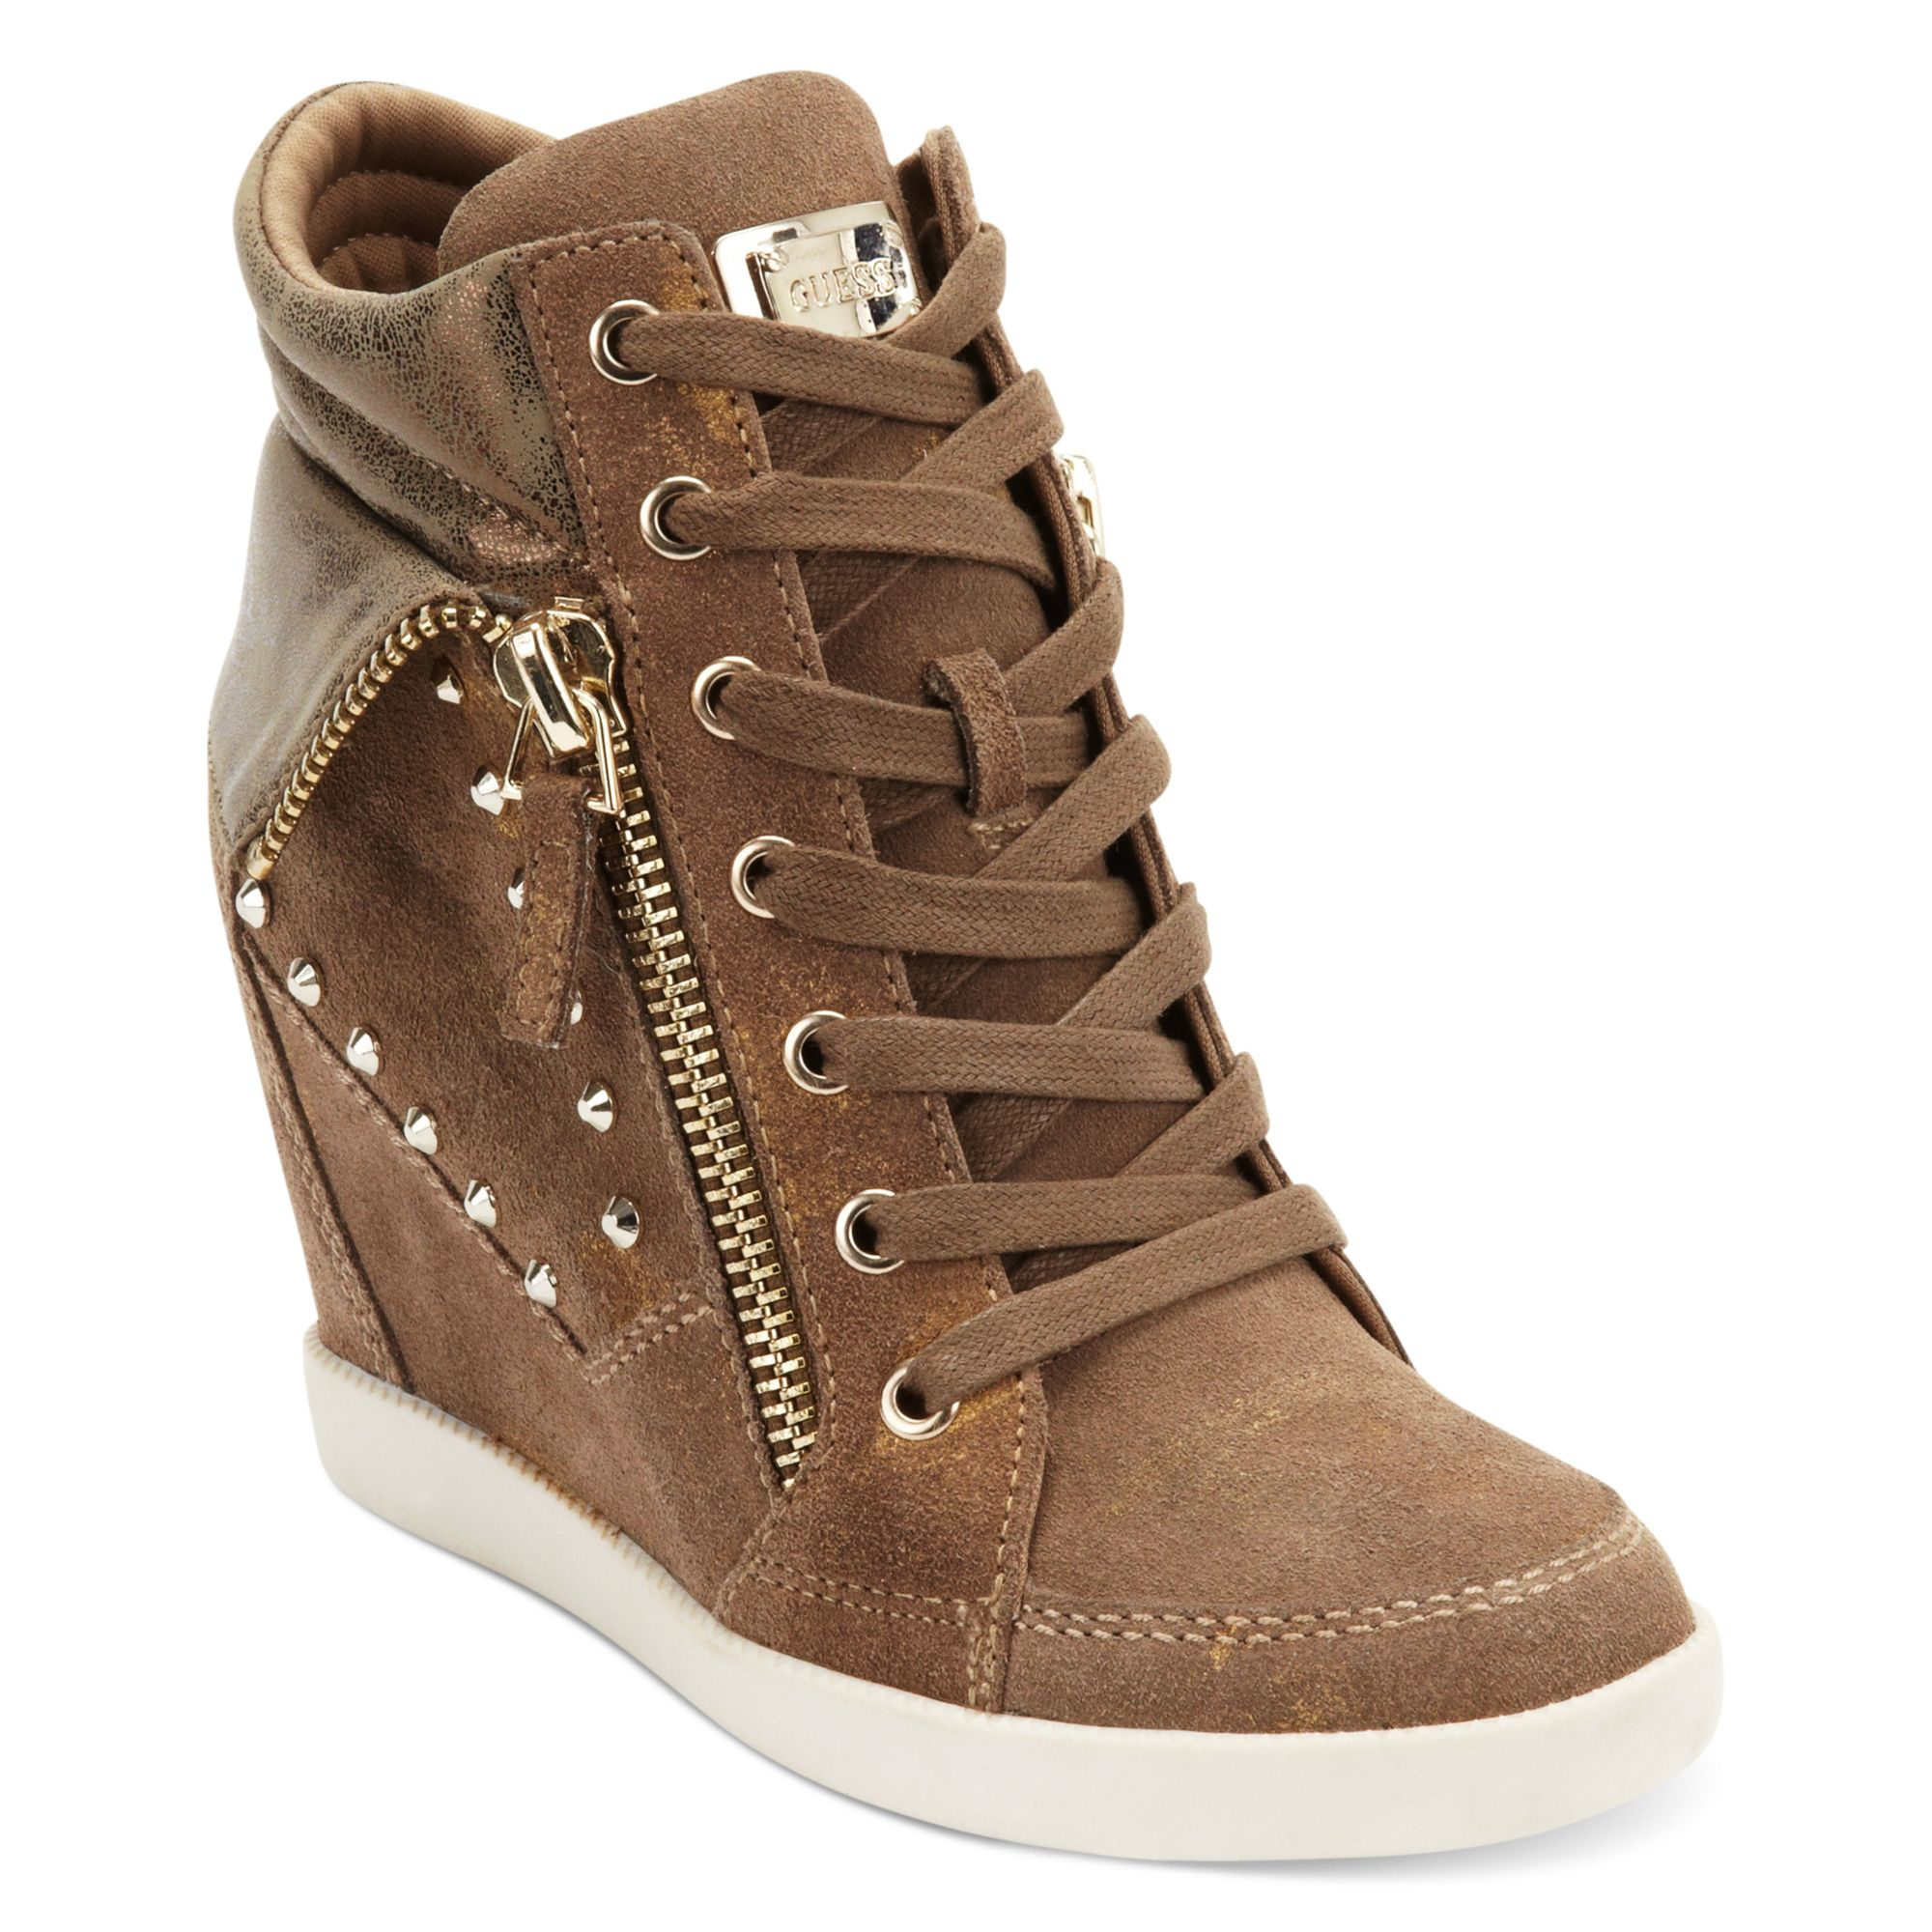 a9d3314d0fc Guess Brown Hitzo Wedge Sneakers